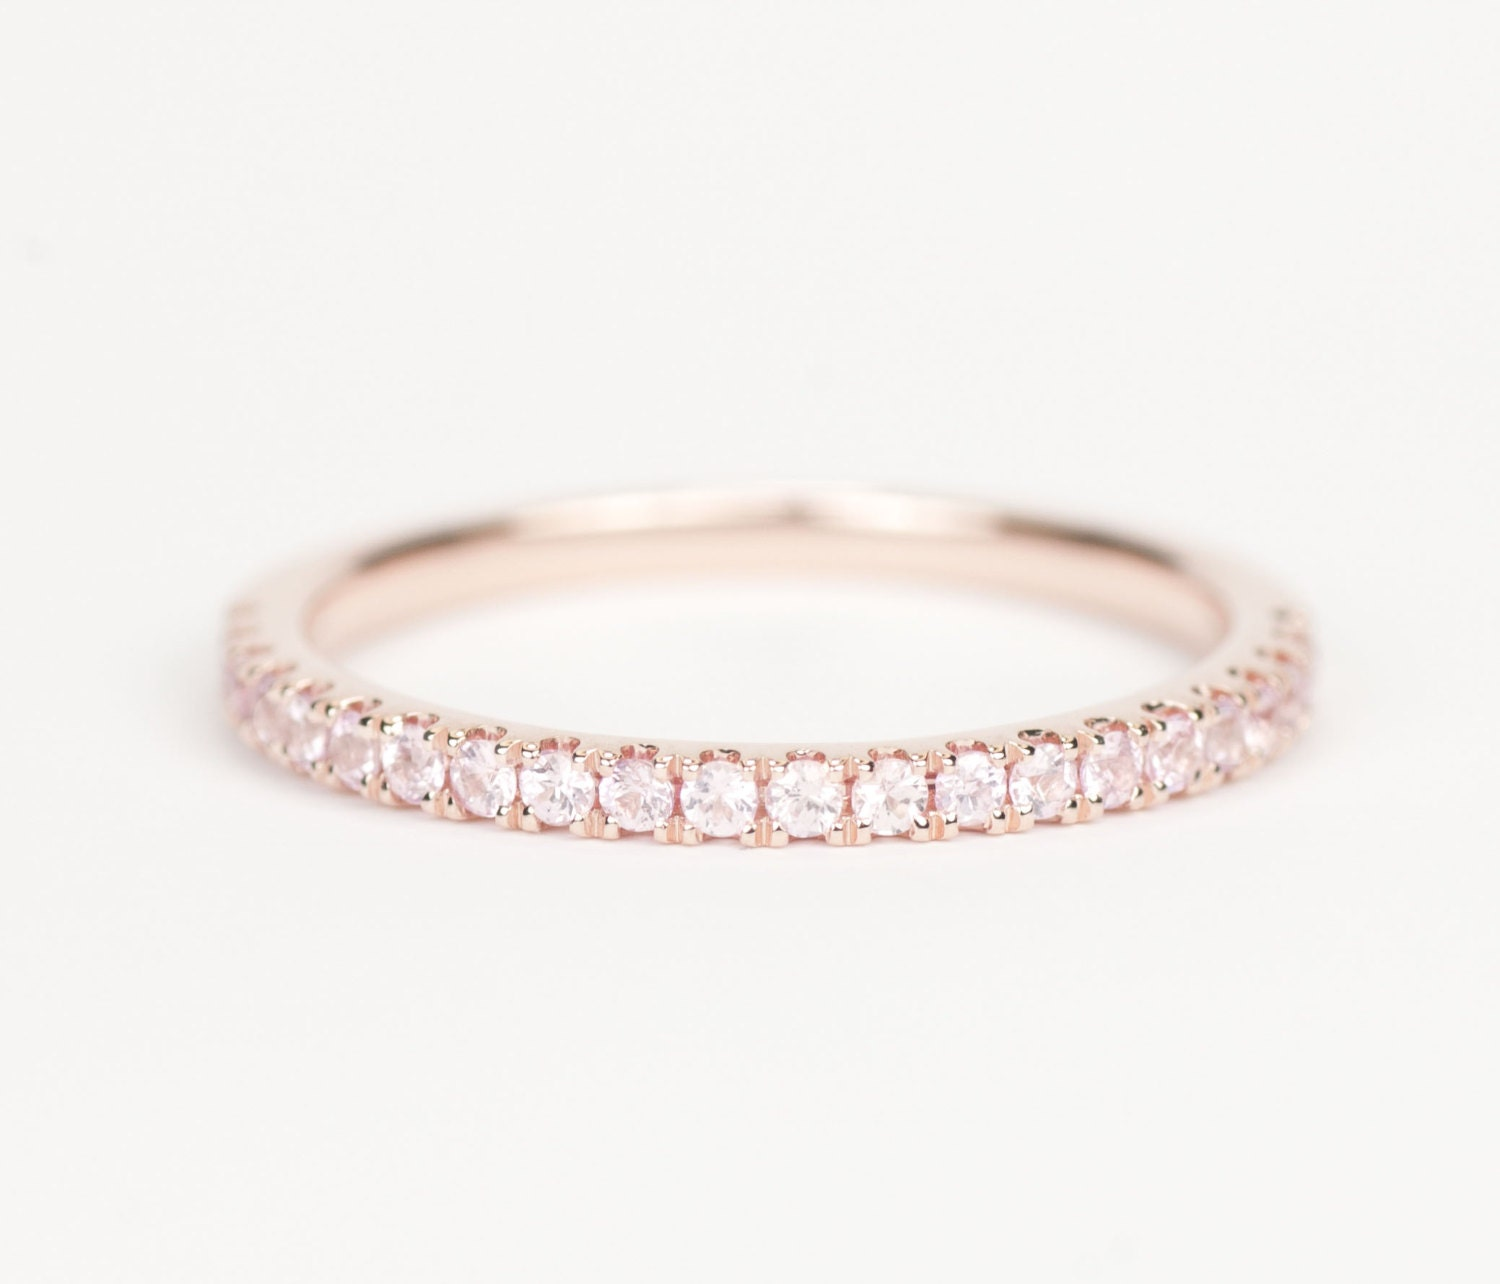 certified light pink sapphire 14k rose gold wedding band